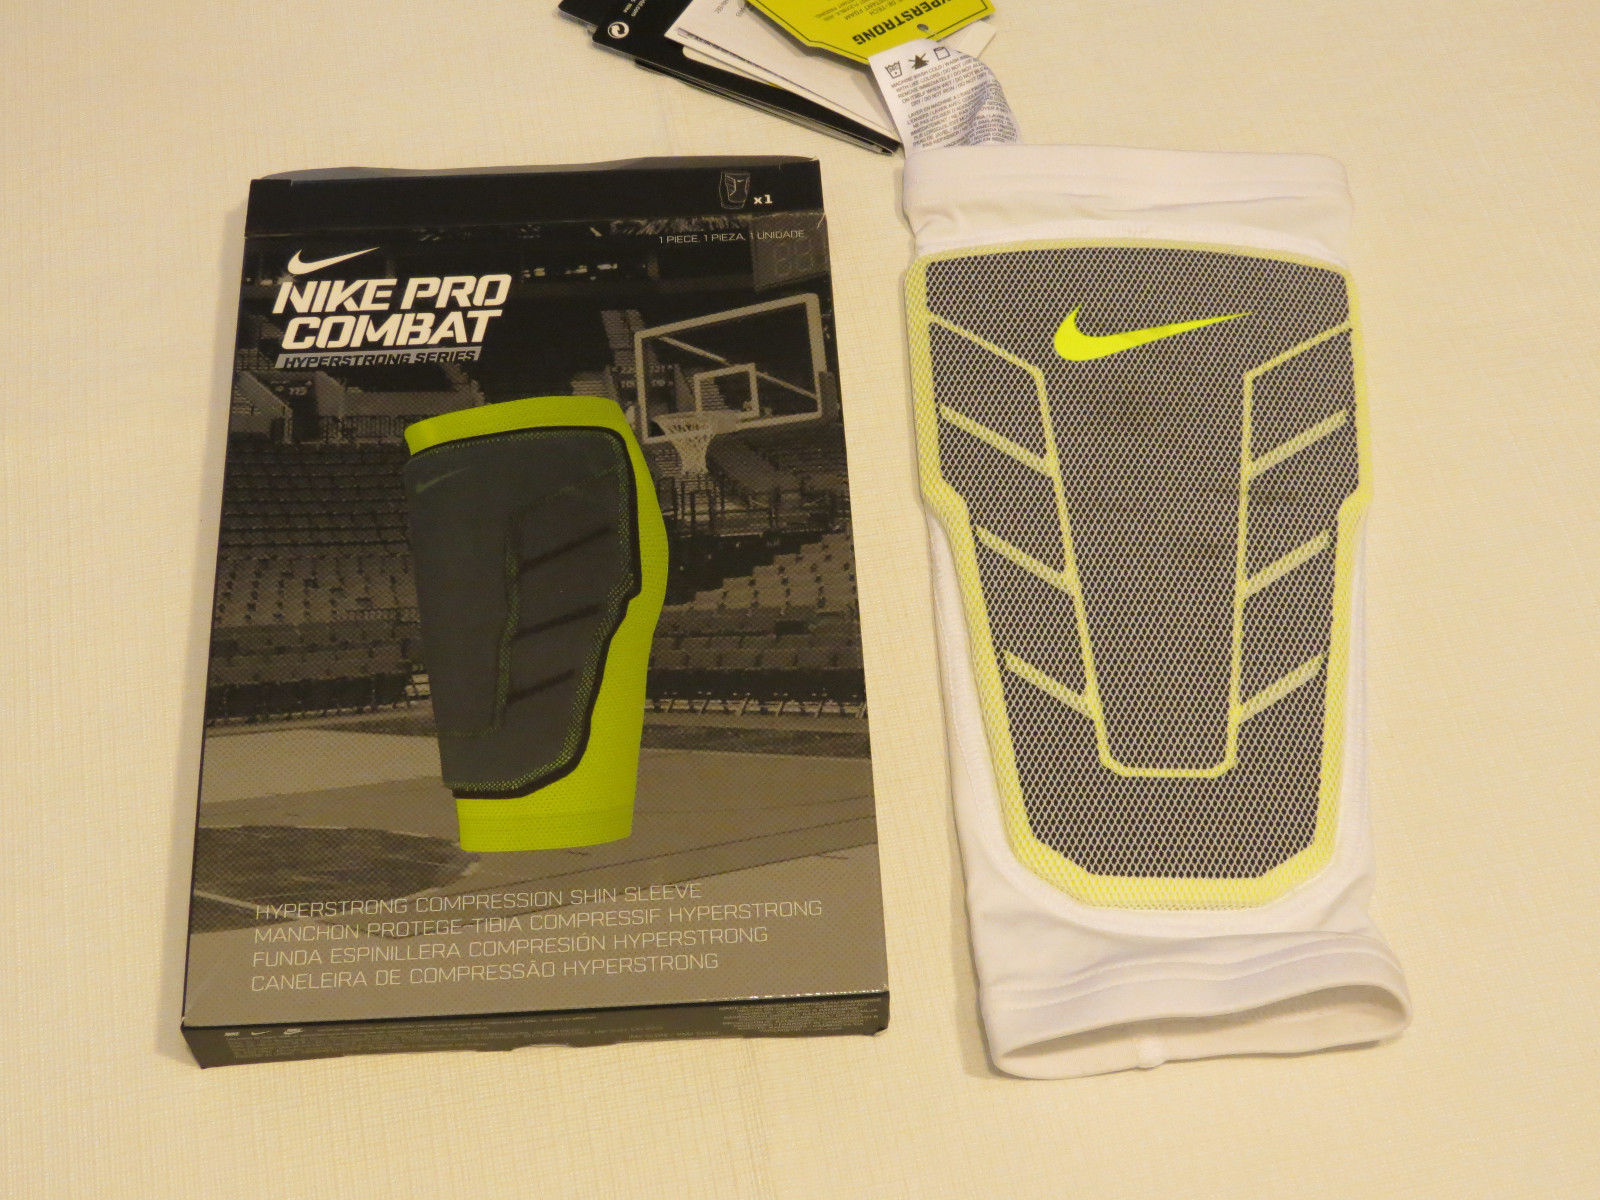 6c64d546a9 Nike Pro Combat Hyperstrong Compression Shin and 50 similar items. 57